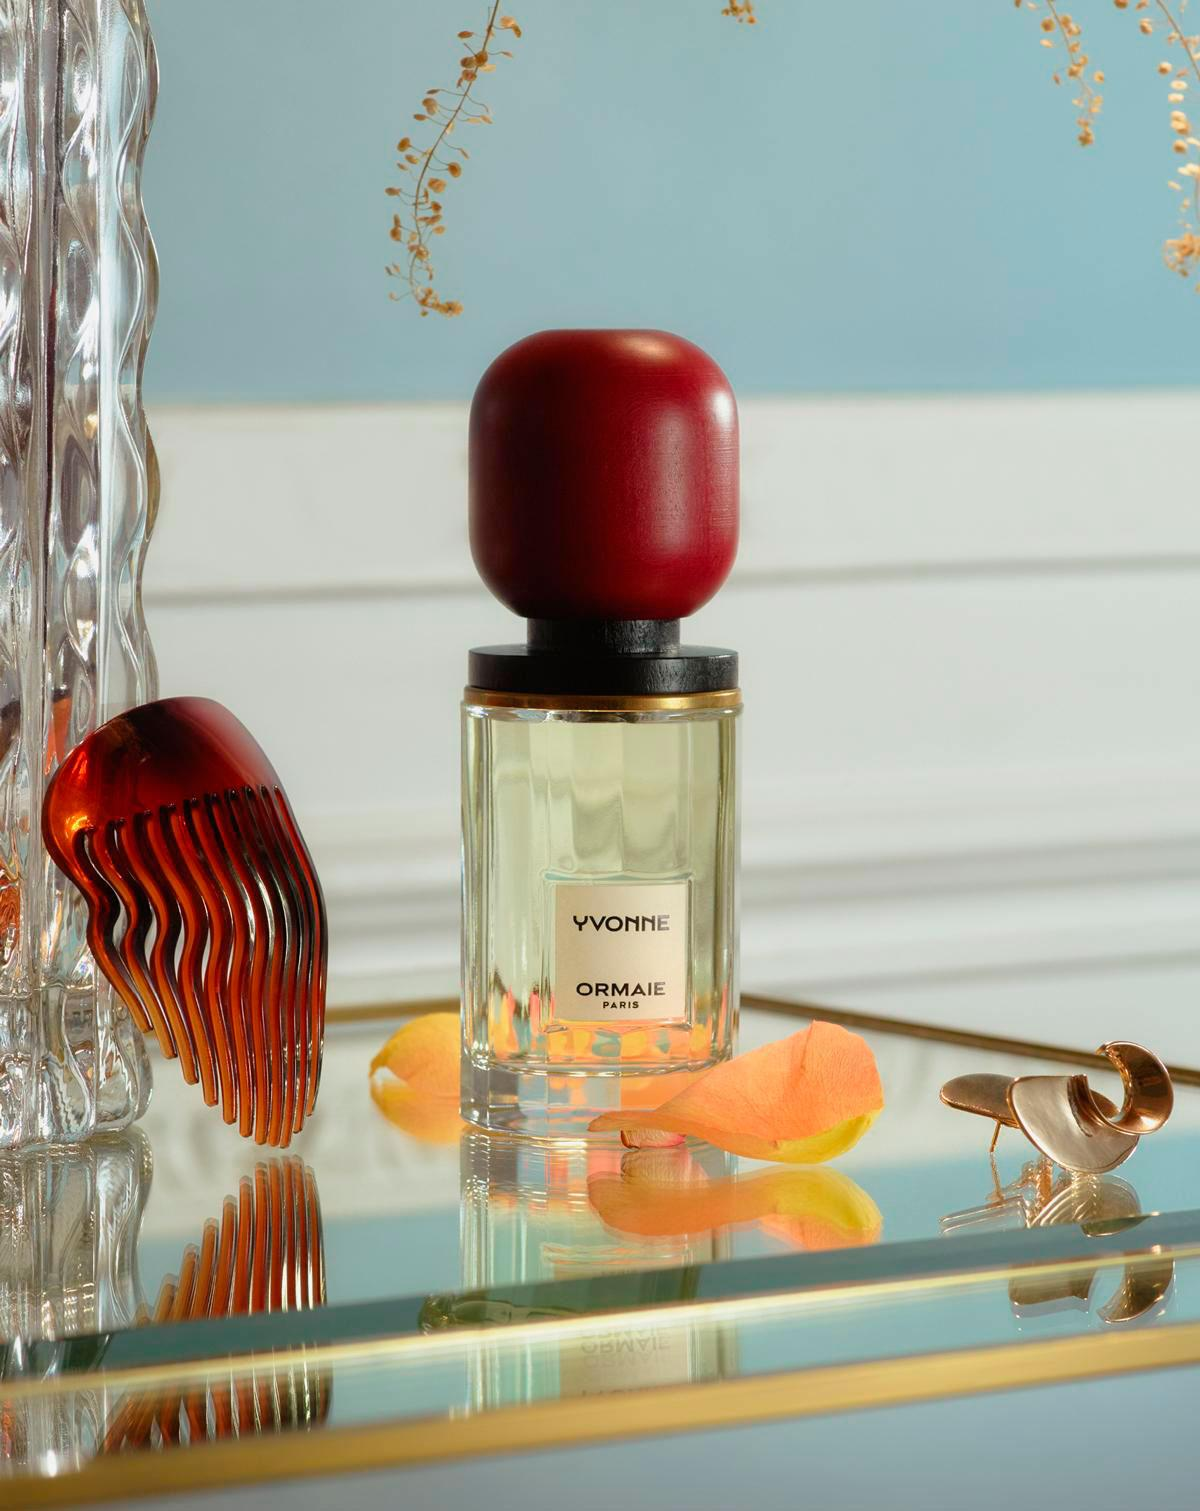 Ormaie bottle of Yvonne fragrance a glass countertop against a light blue wall